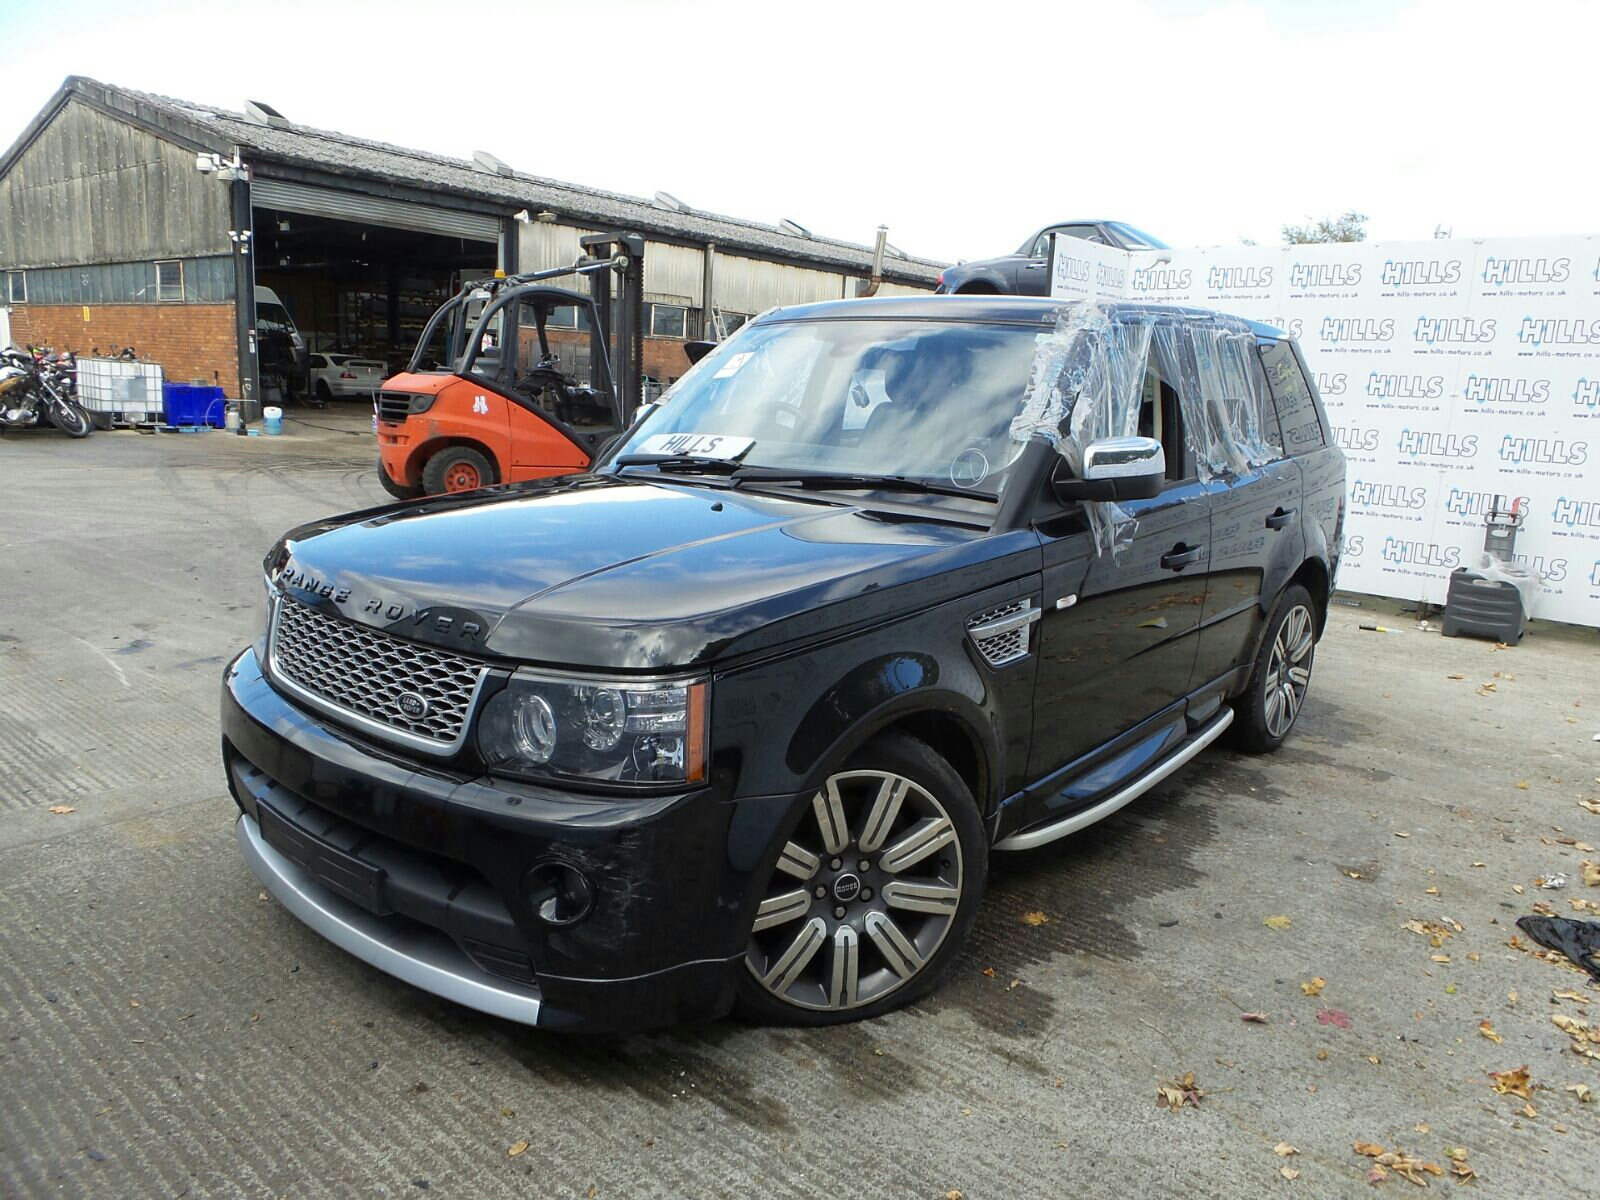 sport salvage rover used hand hills automatic ltd landrover online range diesel second vehicle land details rangeroversport car parts recycling breakers